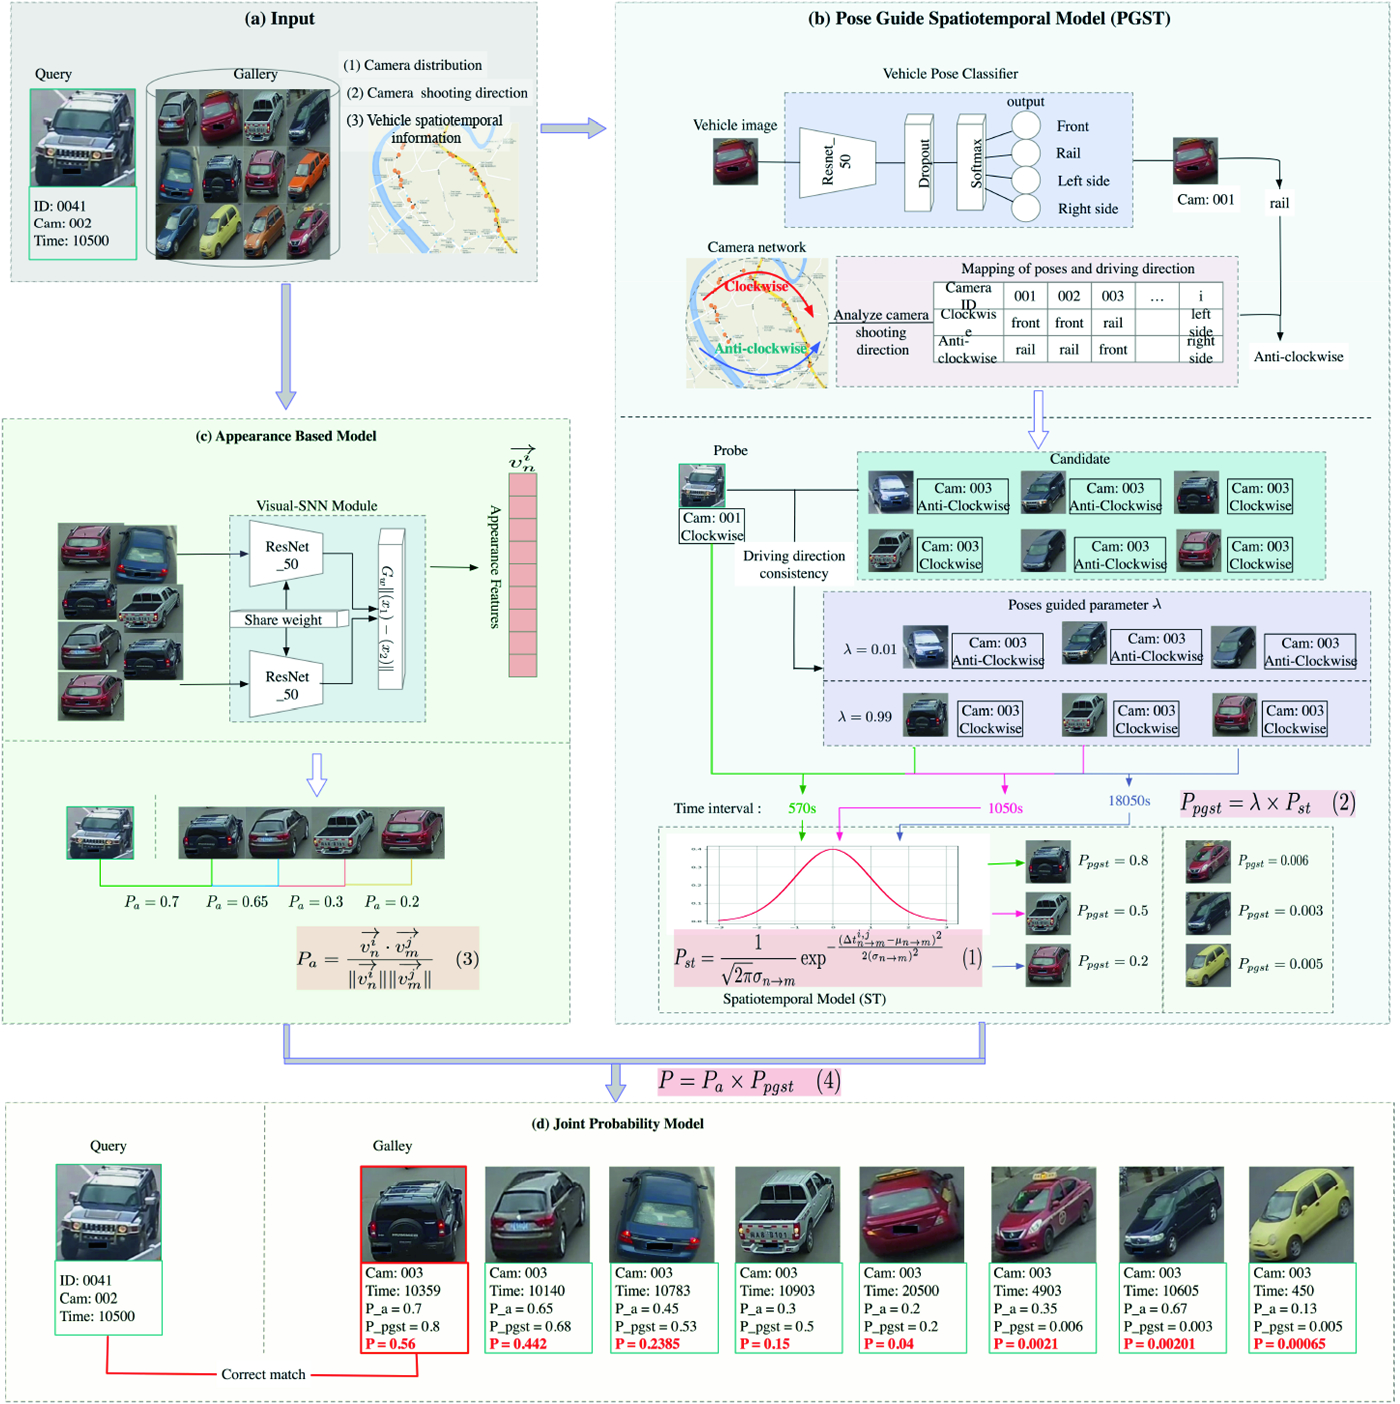 Poses Guide Spatiotemporal Model for Vehicle Re